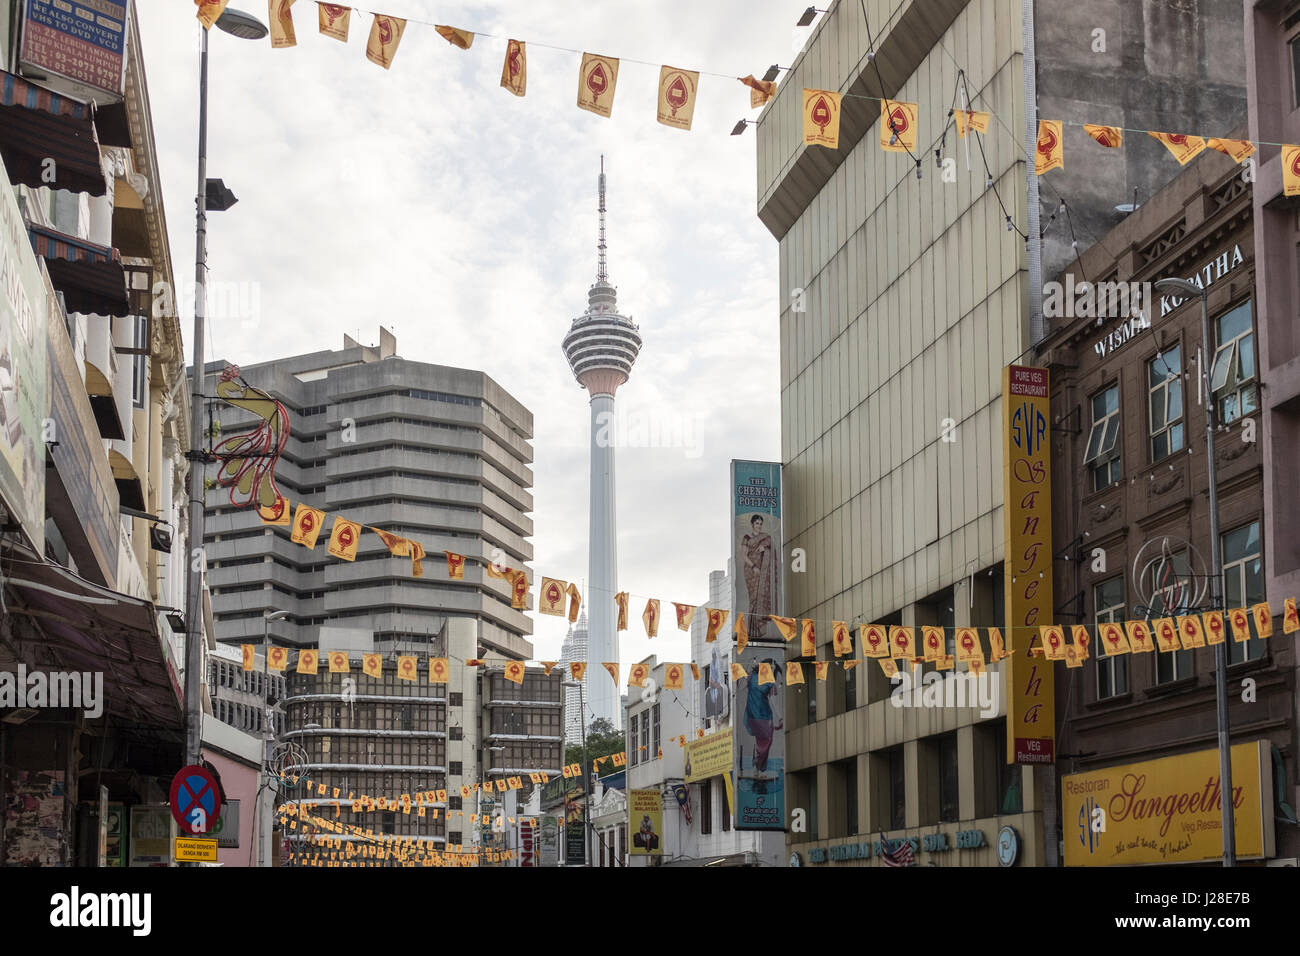 The KL Tower is seen through the buildings in downtown Kuala Lumpur, Malaysia - Stock Image